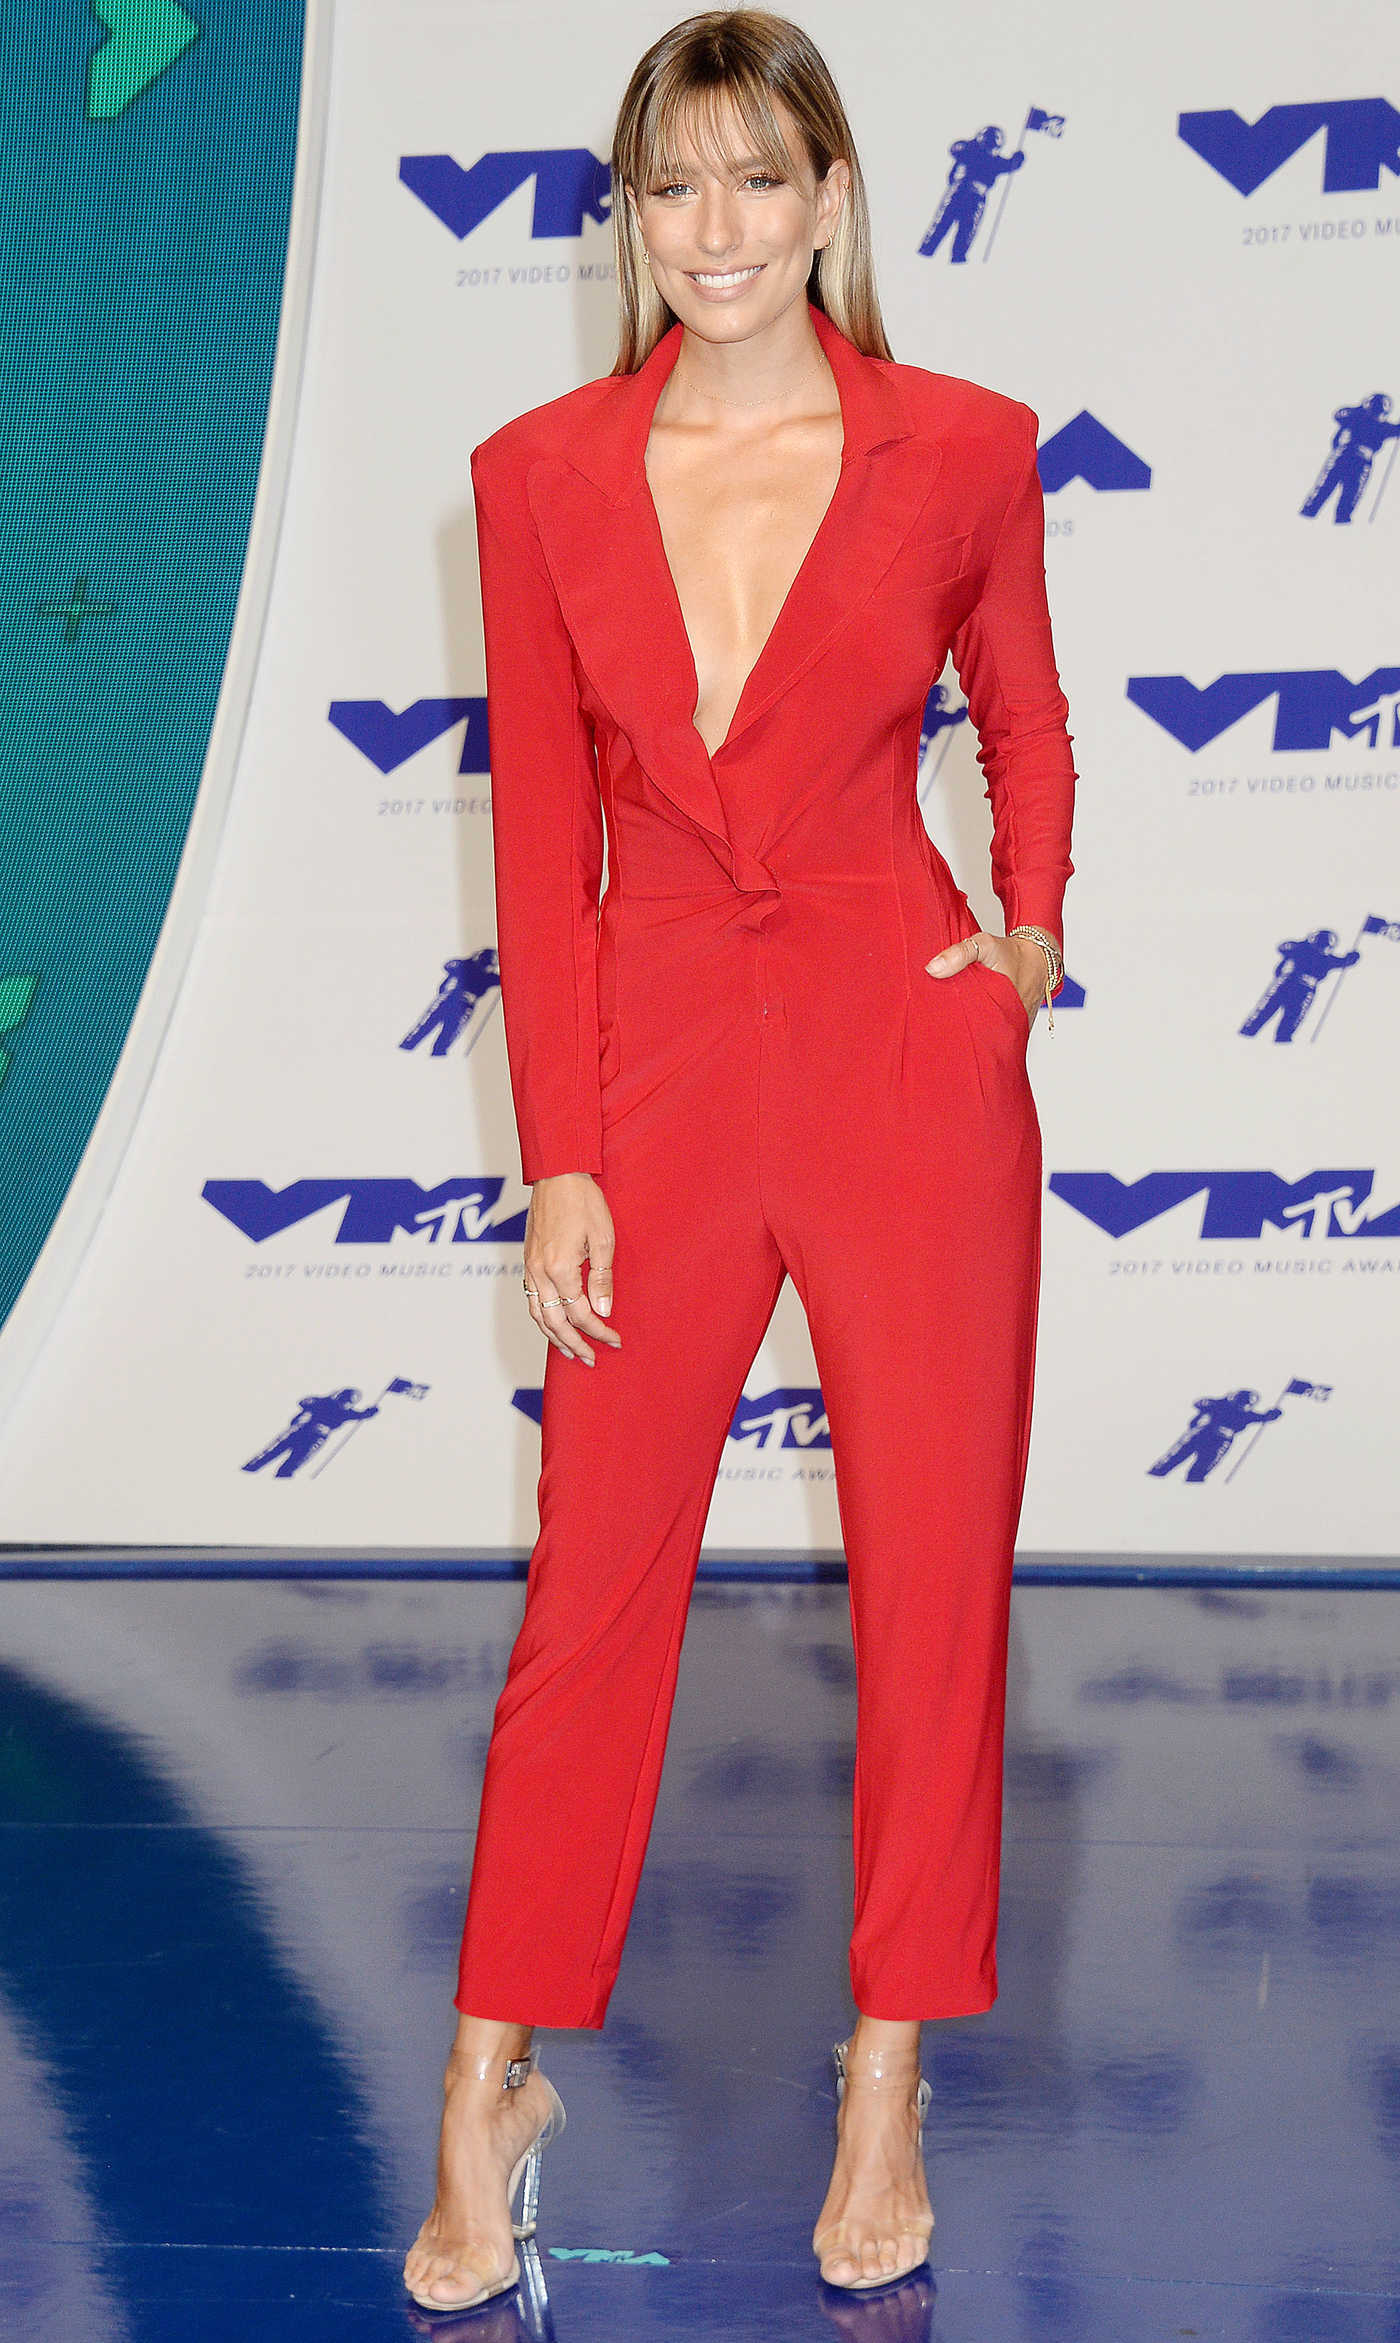 Renee Bargh at the 2017 MTV Video Music Awards in Los Angeles 08/27/2017